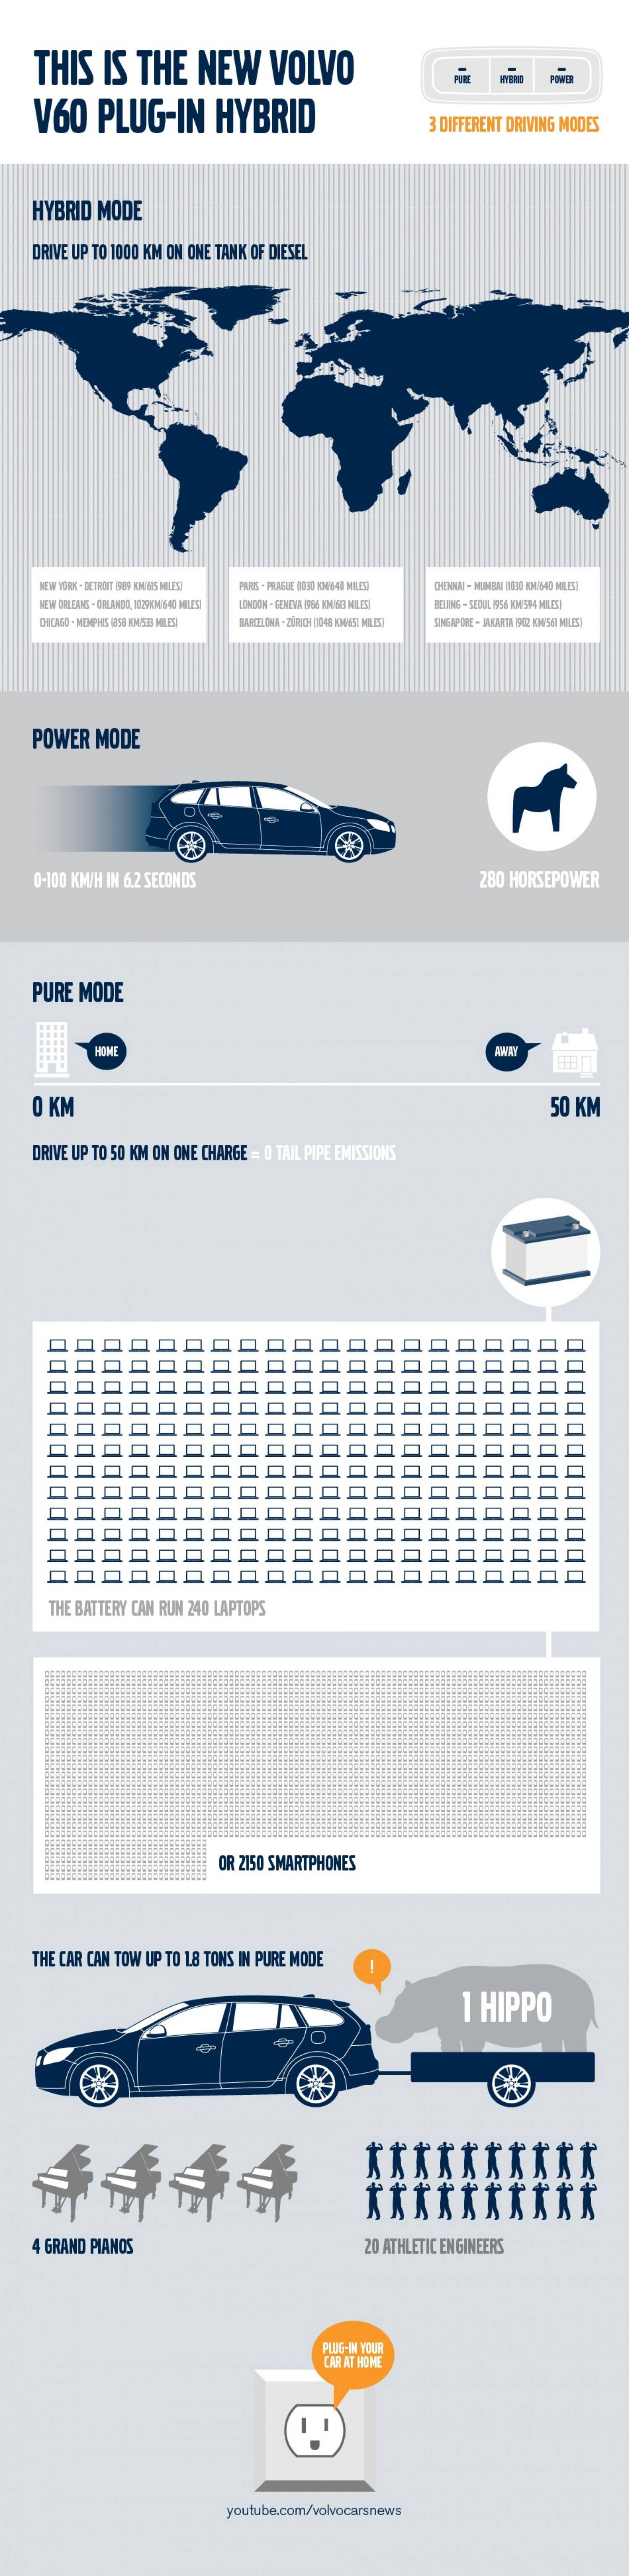 The world's first diesel plug-in hybrid car Infographic